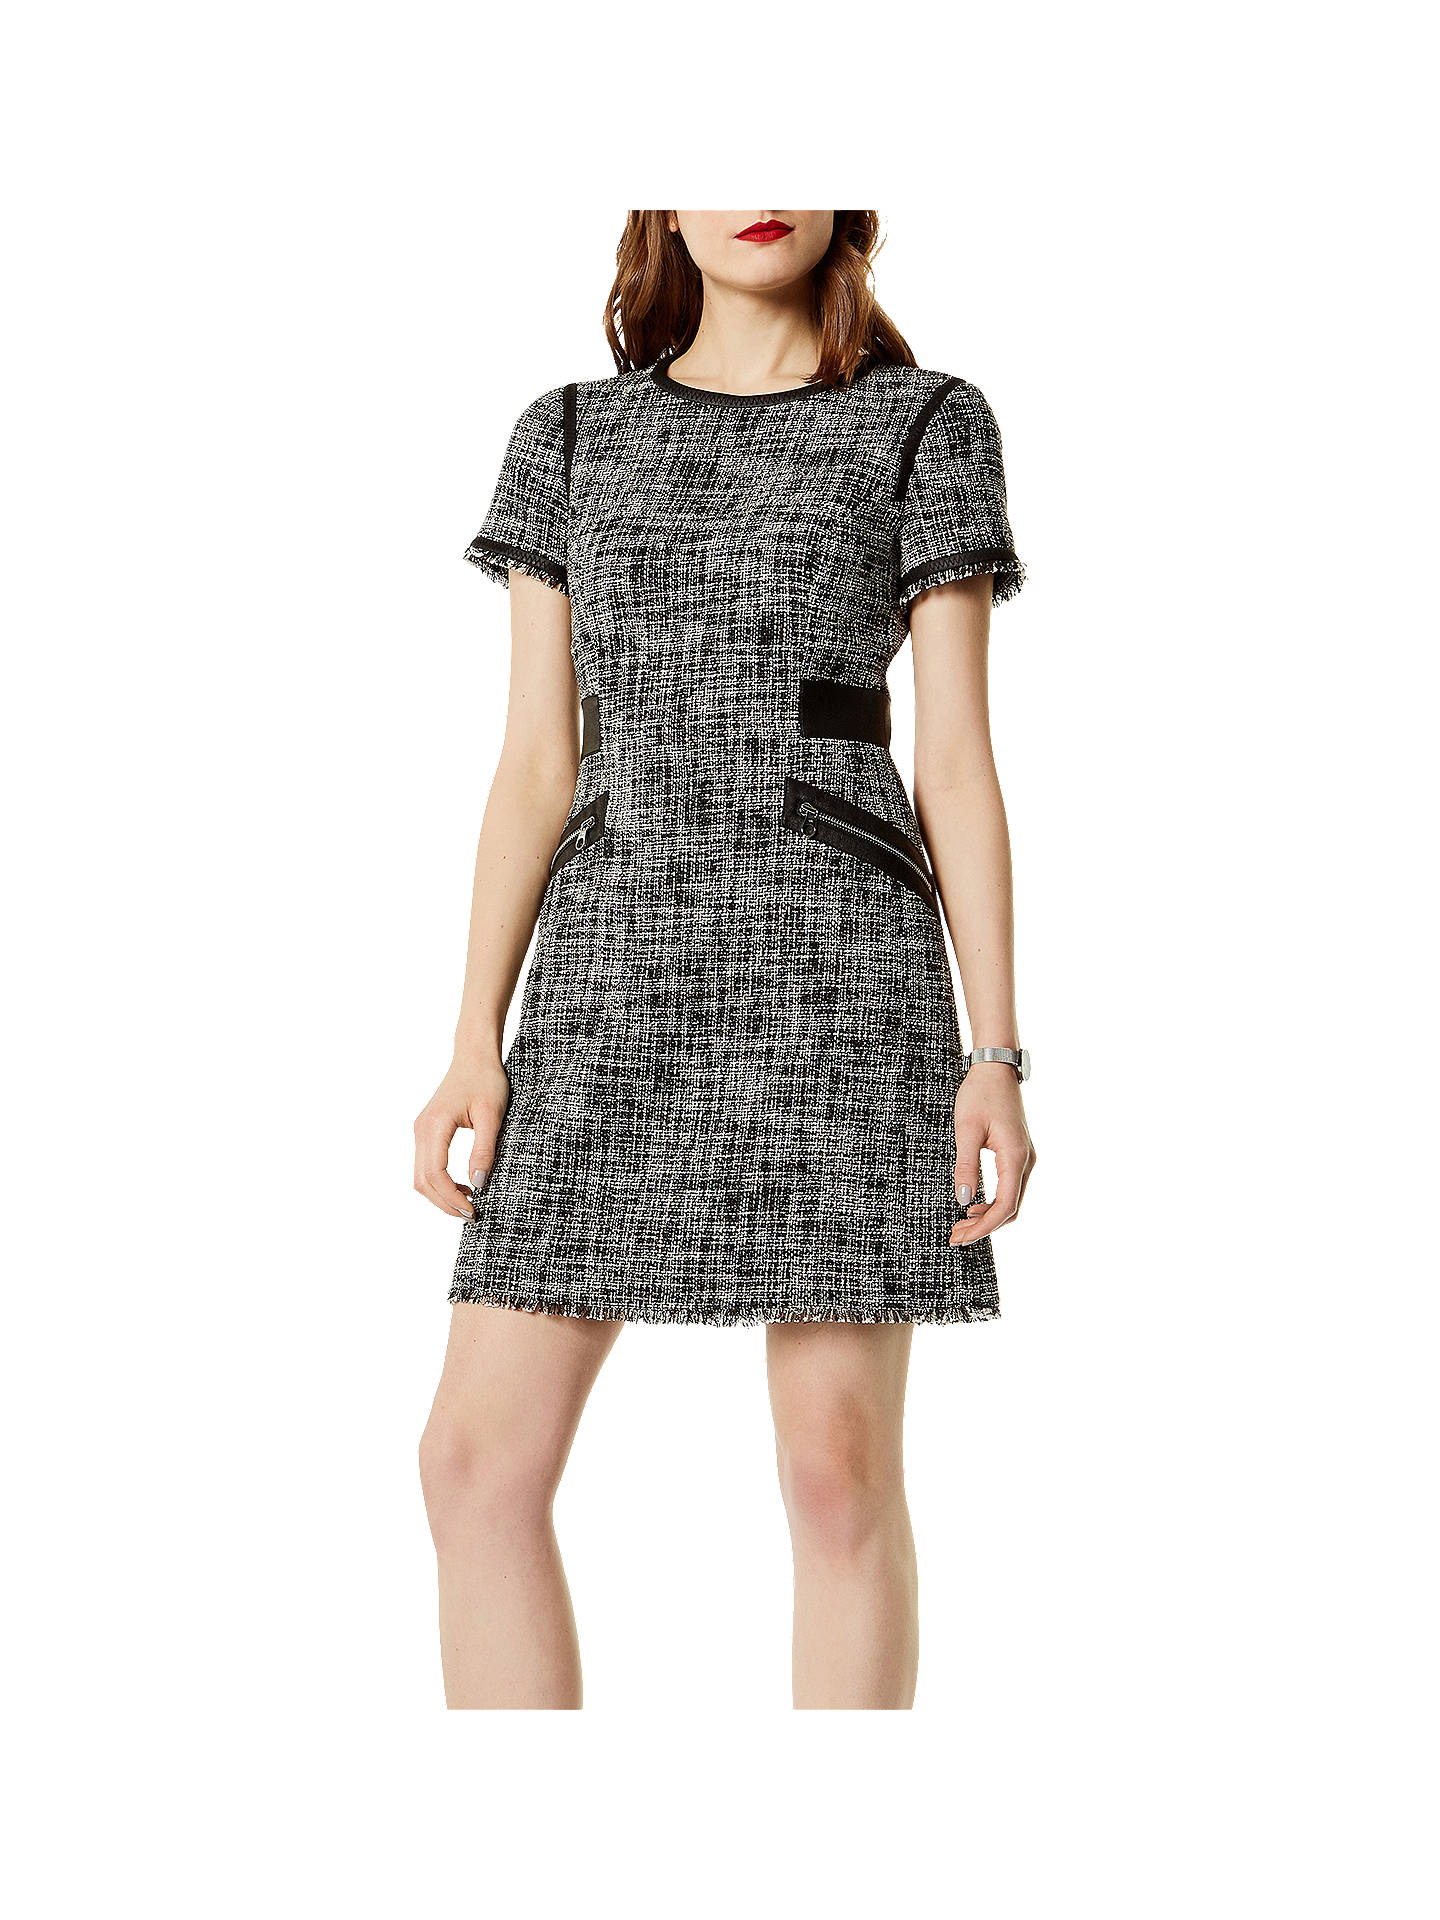 28dbe3c50c0c Buy Karen Millen Fun Tweed Dress, Black/White, 6 Online at johnlewis.